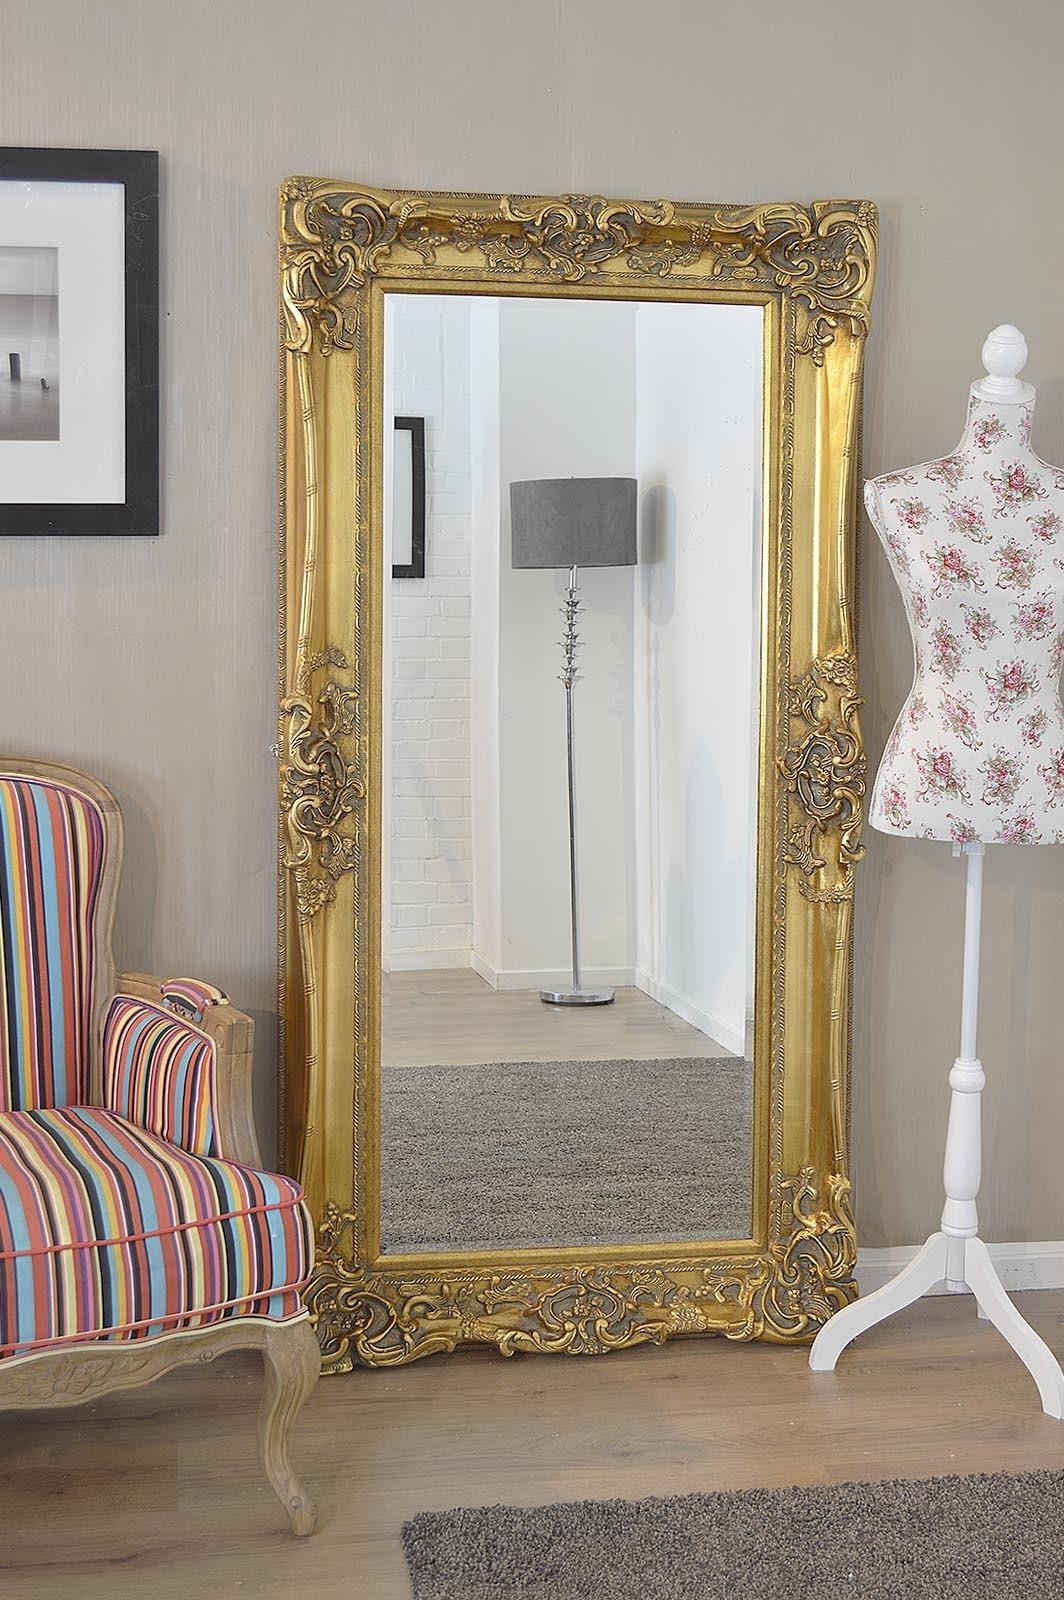 Full Length Mirrors For Sale 120 Awesome Exterior With Wall Within Extra Large Full Length Mirror (Image 17 of 20)